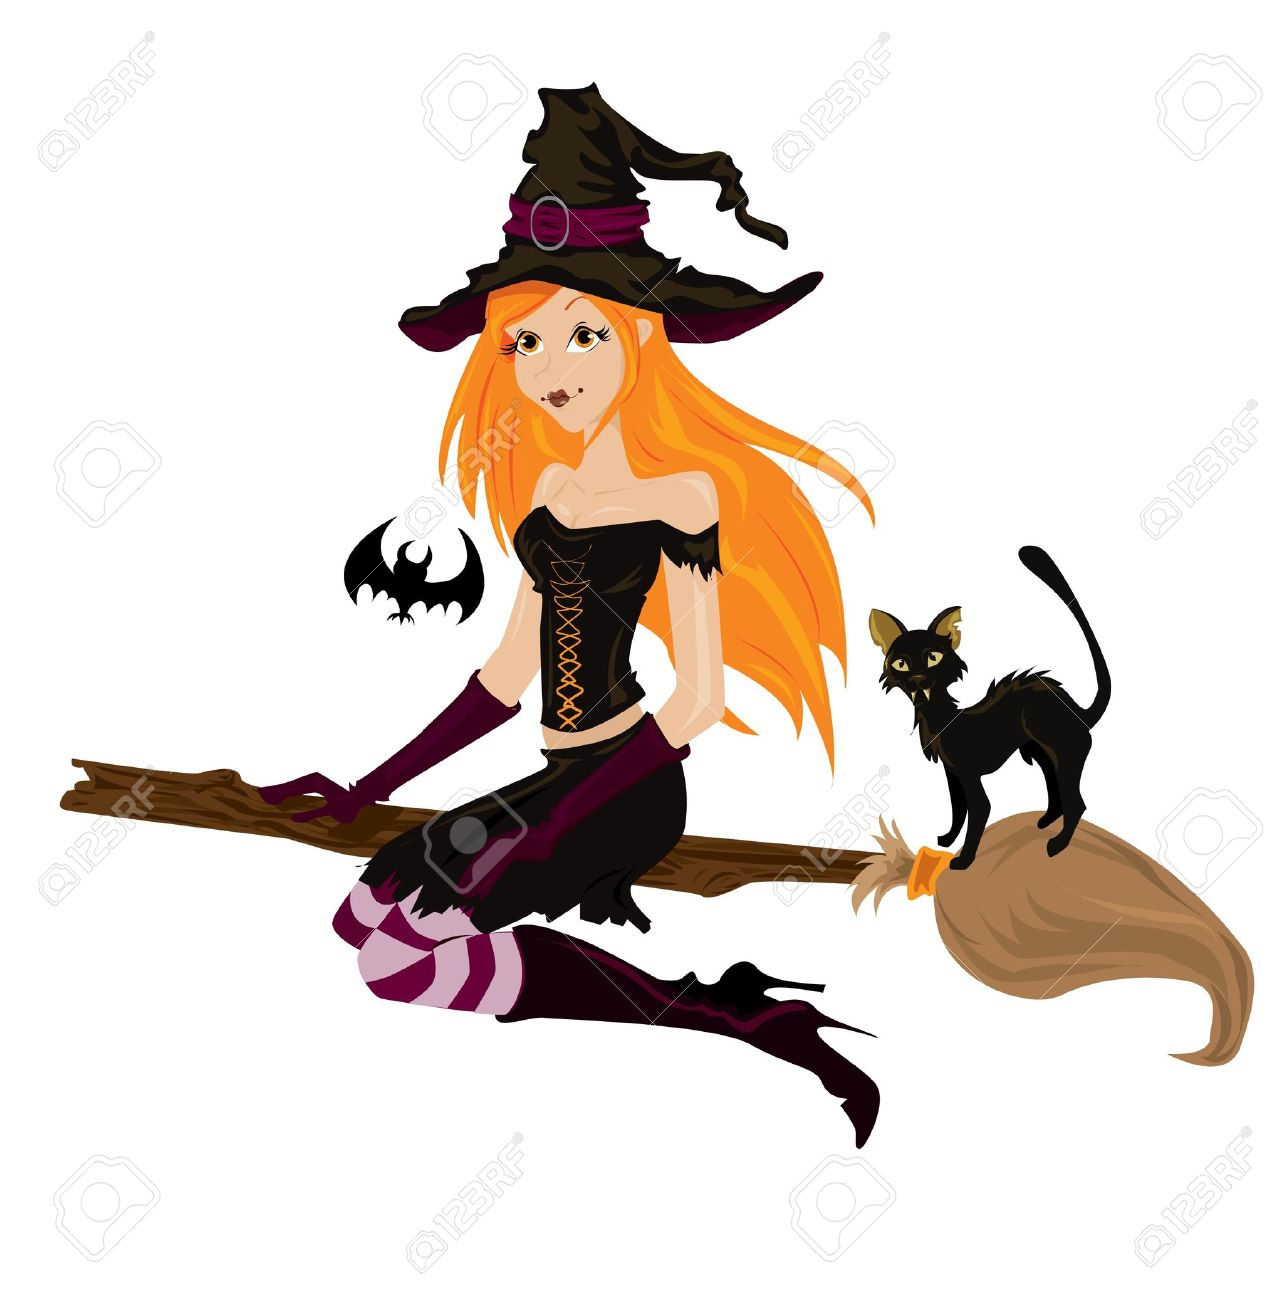 halloween witch stock vector 8001248 - Halloween Which